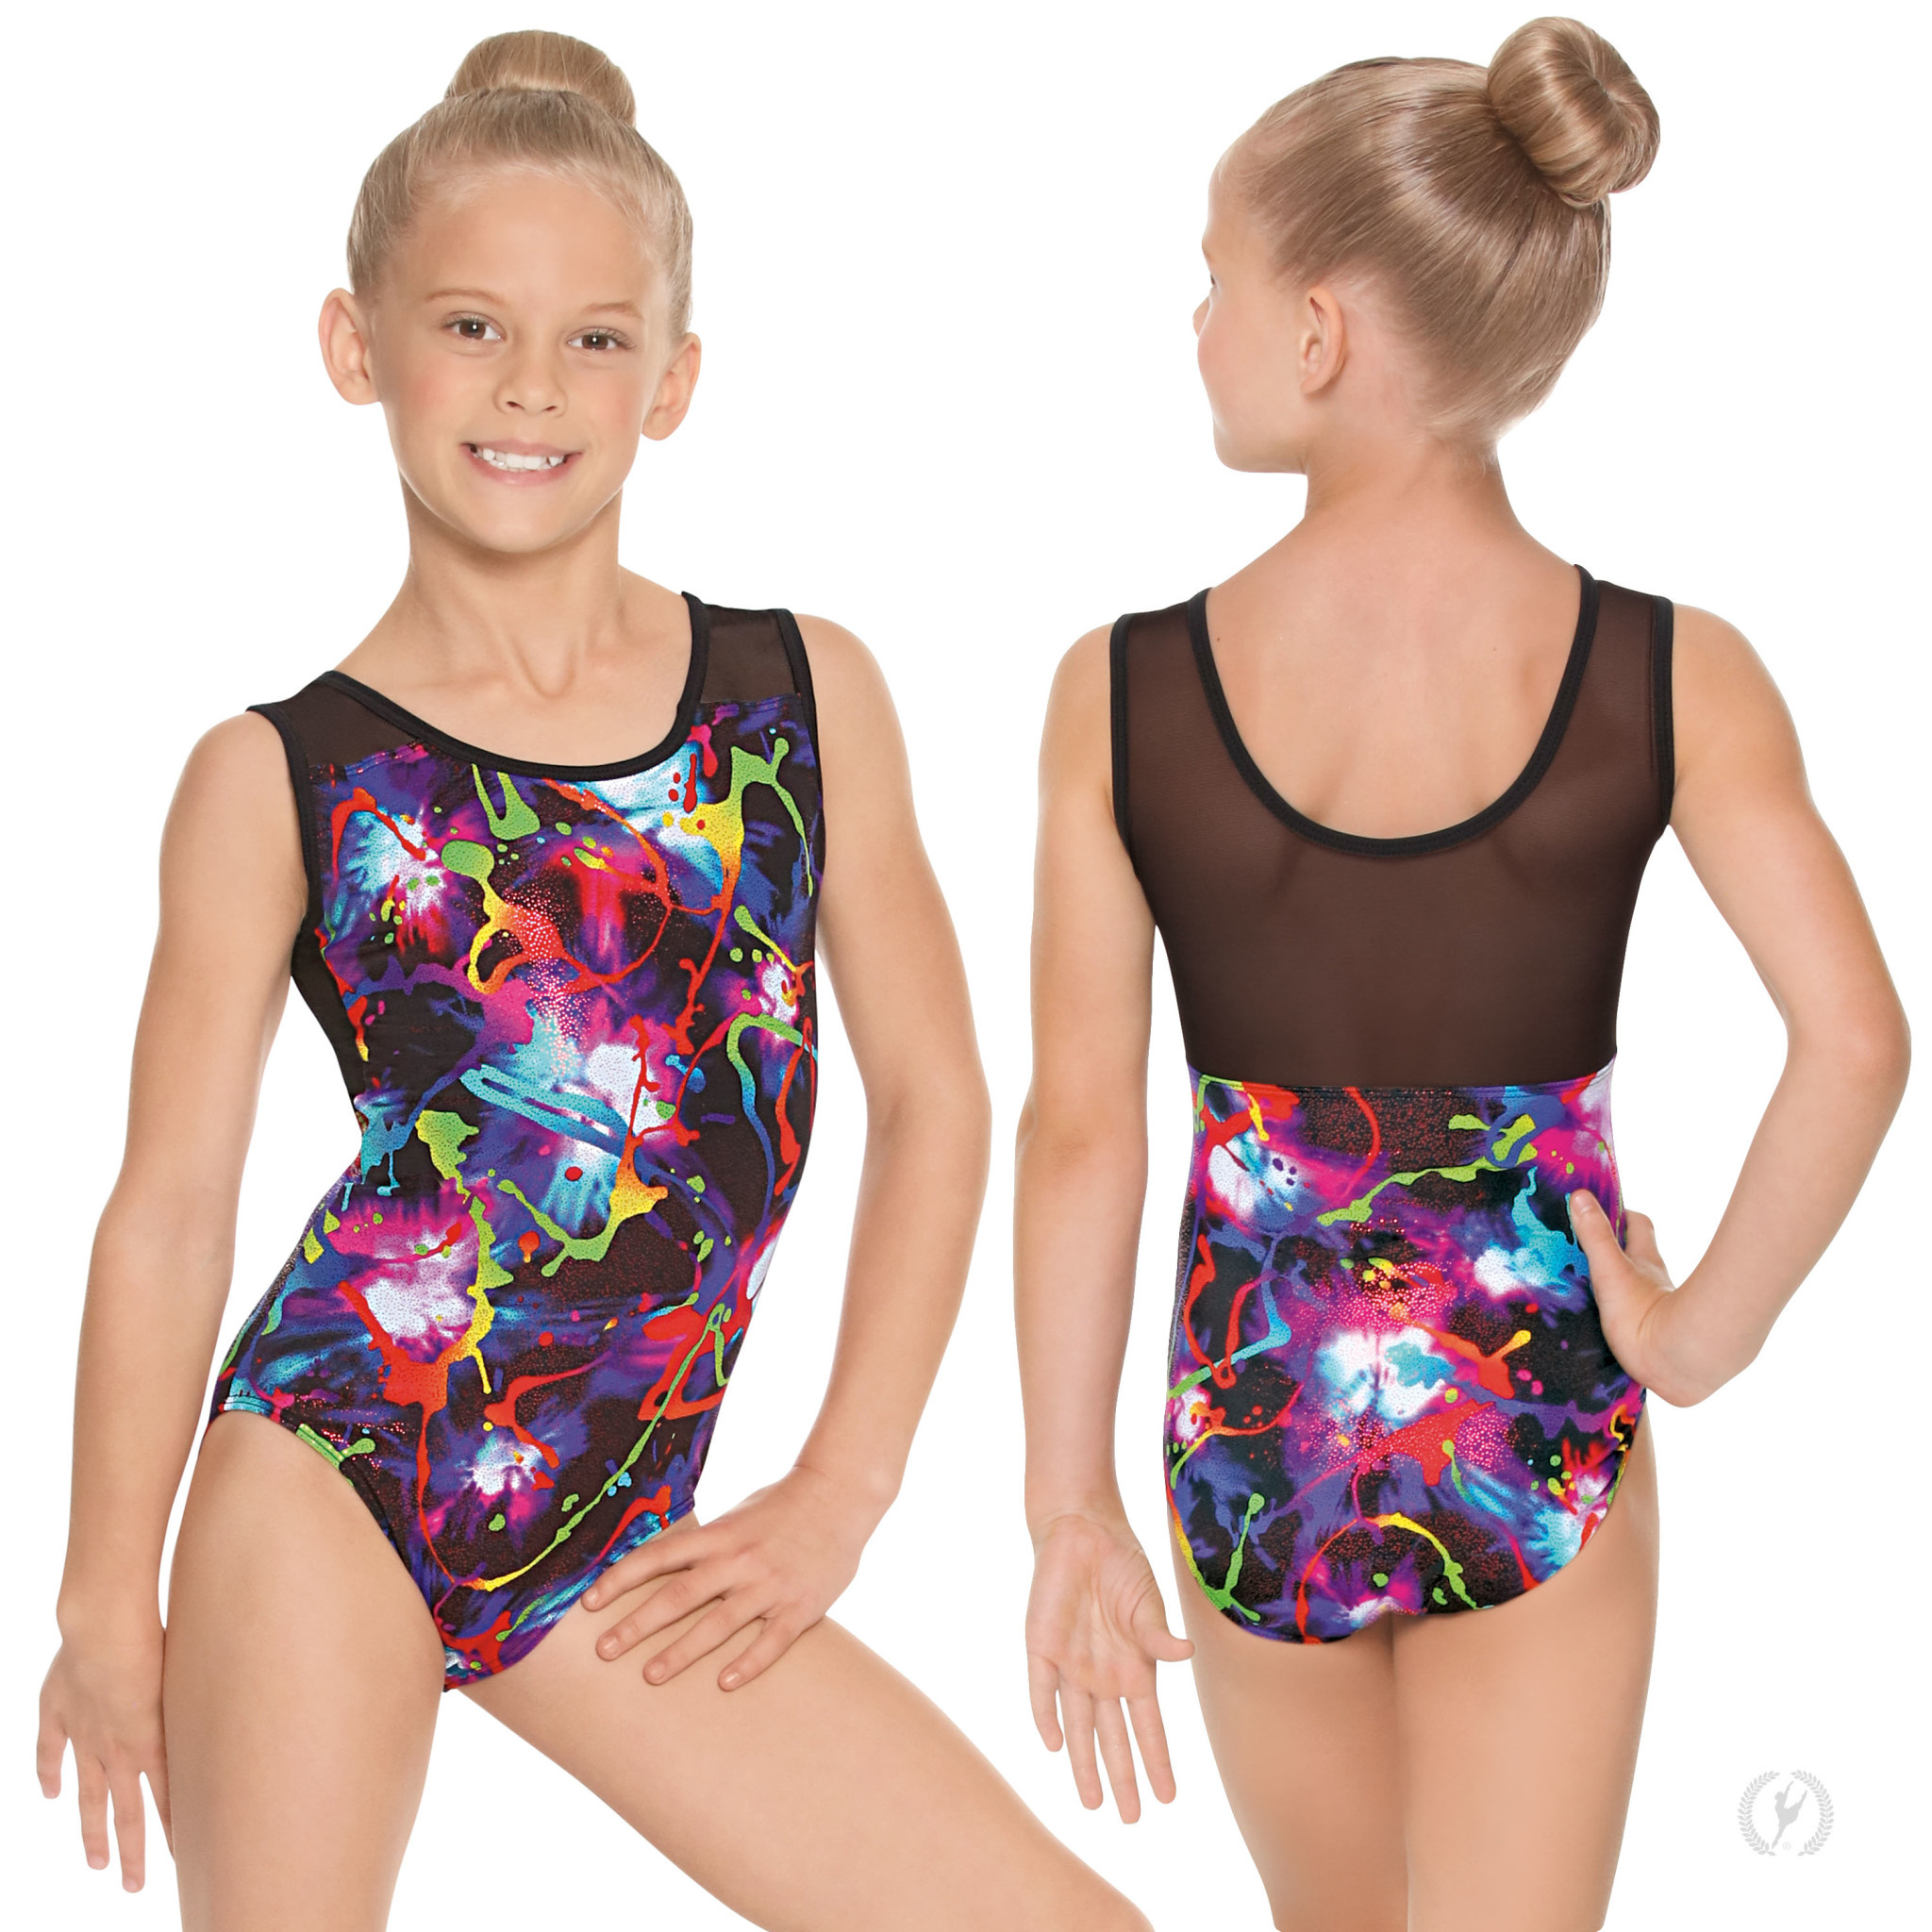 Eurotard 75586C-Metallic Graffiti Mesh Back Gym Leotard